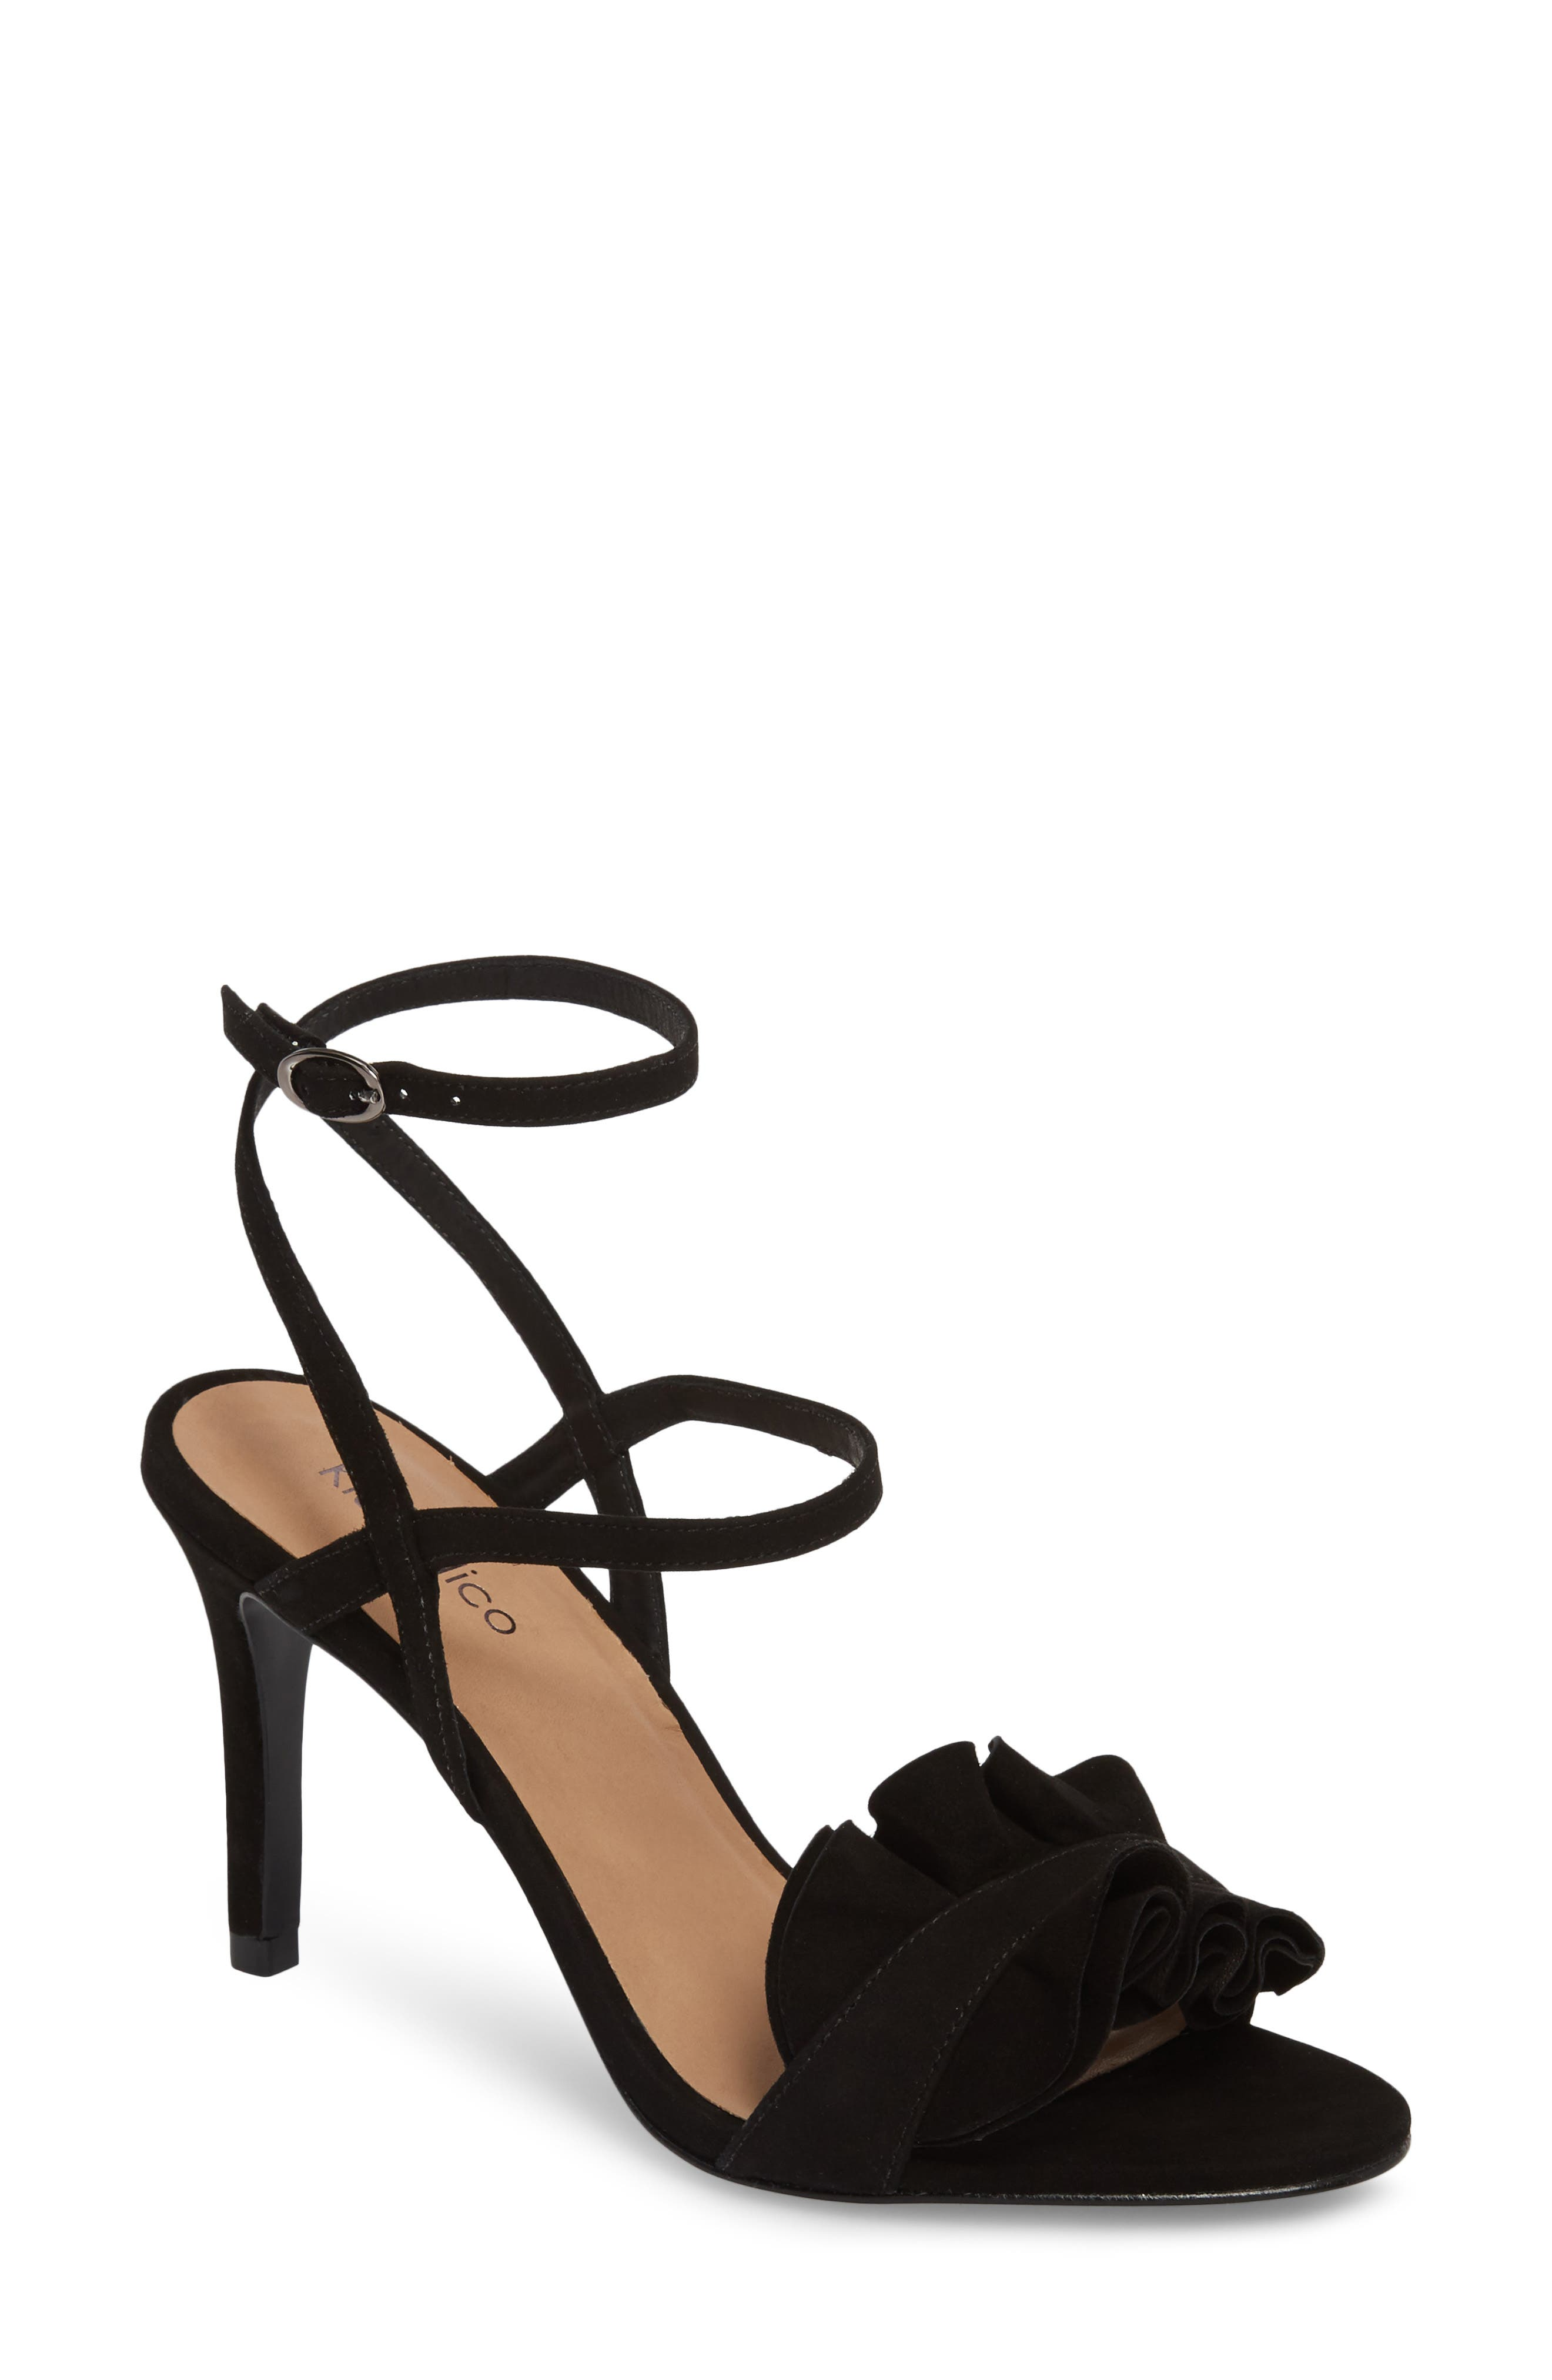 Ansley Sandal,                             Main thumbnail 1, color,                             BLACK SUEDE